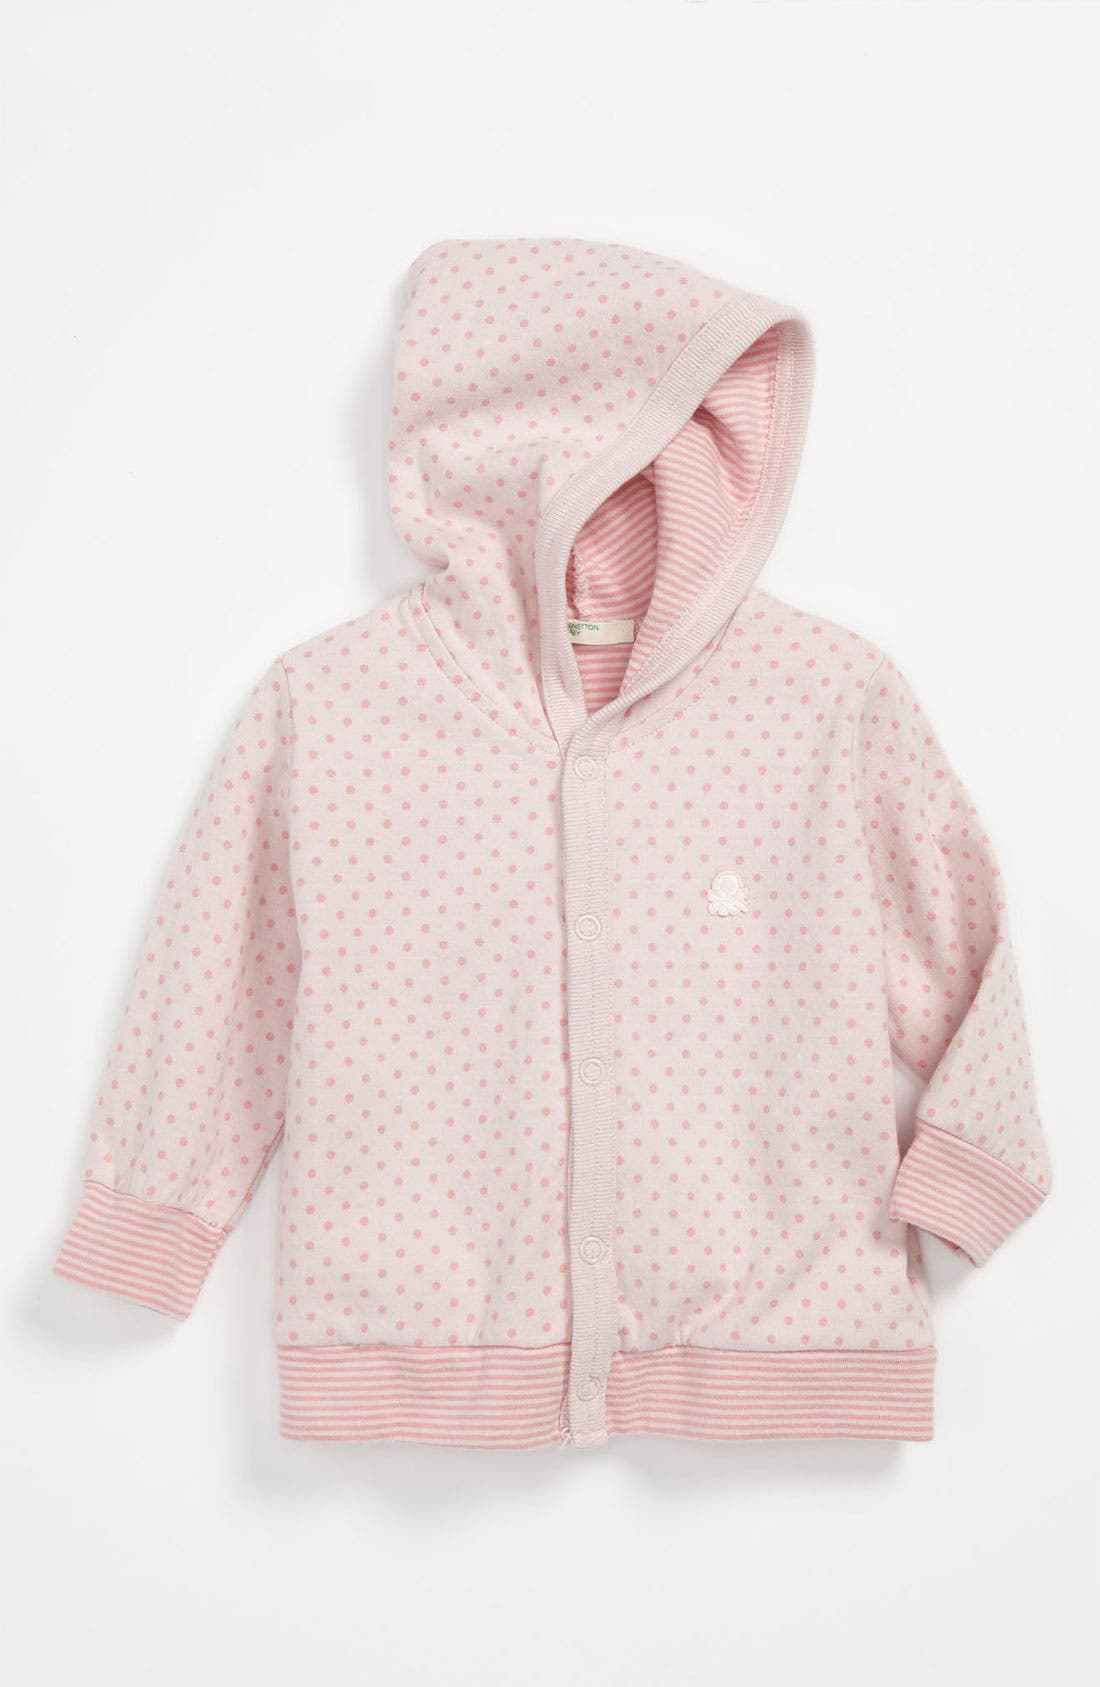 Alternate Image 1 Selected - United Colors of Benetton Kids Polka Dot Hoodie (Baby)